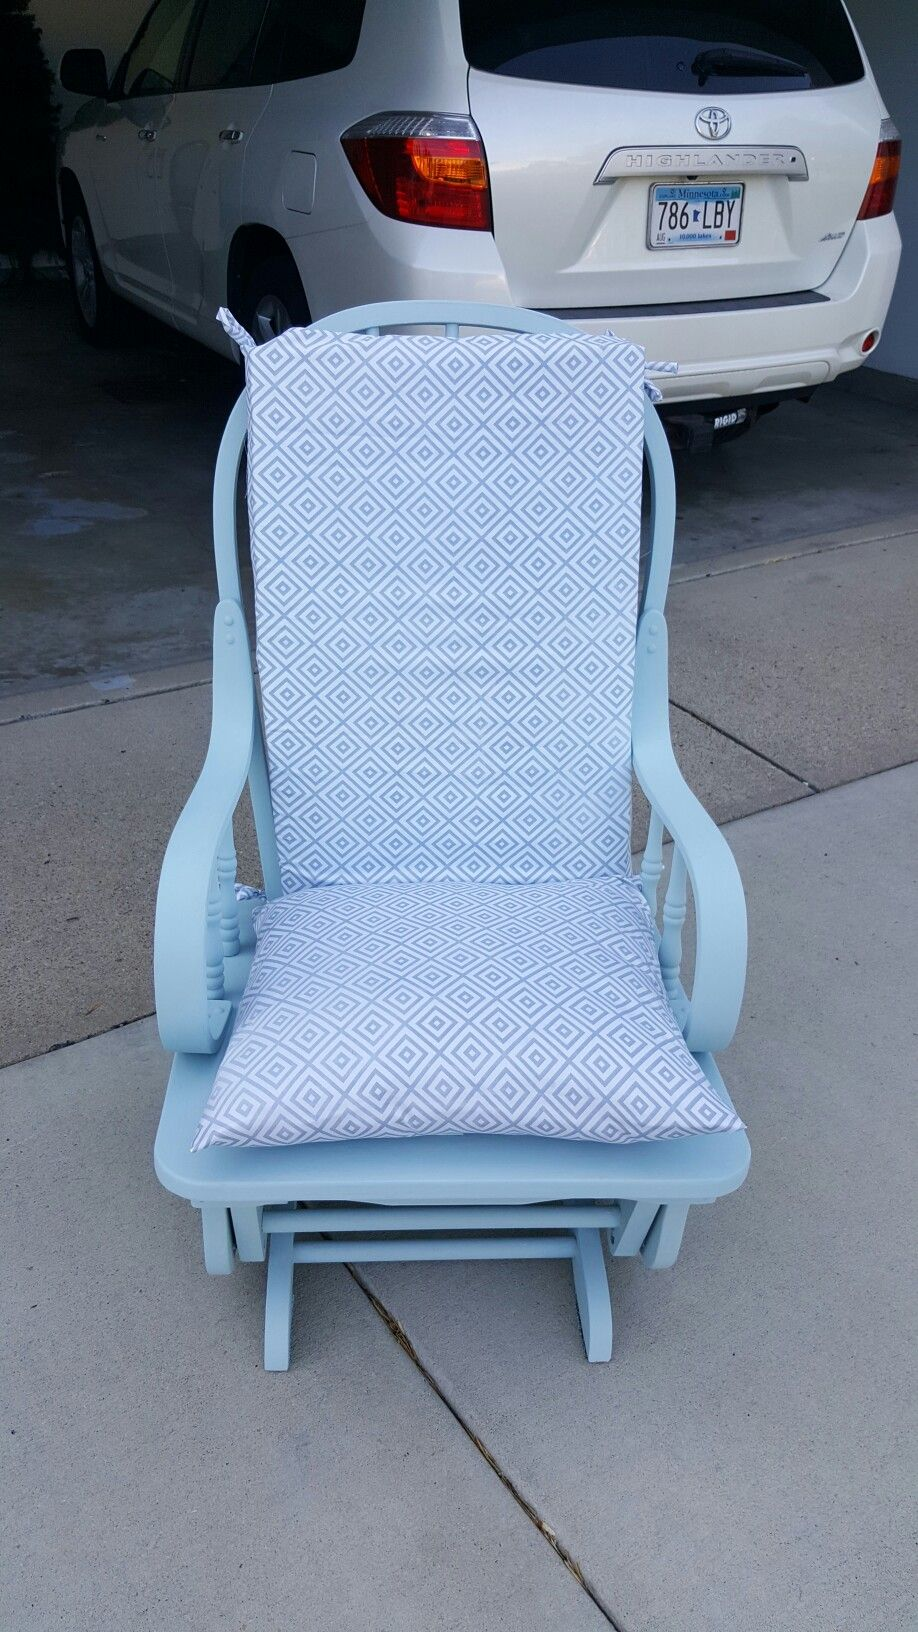 Enjoyable Bought This Rocking Chair From The Thrift Store Used Chalk Gmtry Best Dining Table And Chair Ideas Images Gmtryco